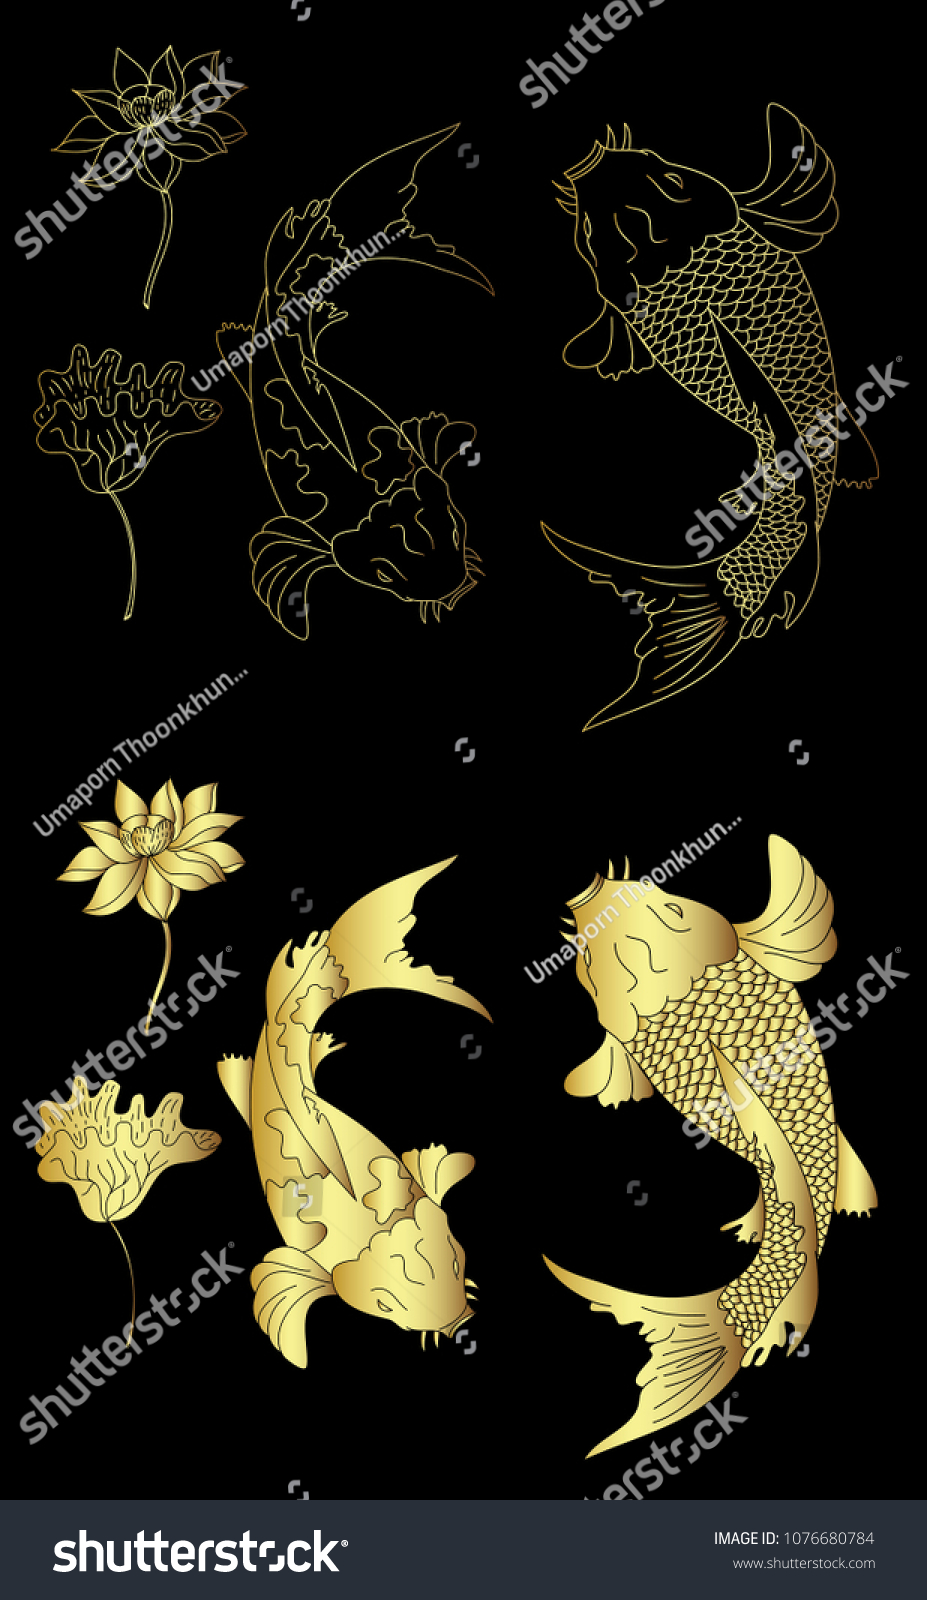 Gold Koi Fish Lotus Flower Tattoo Stock Vector Royalty Free